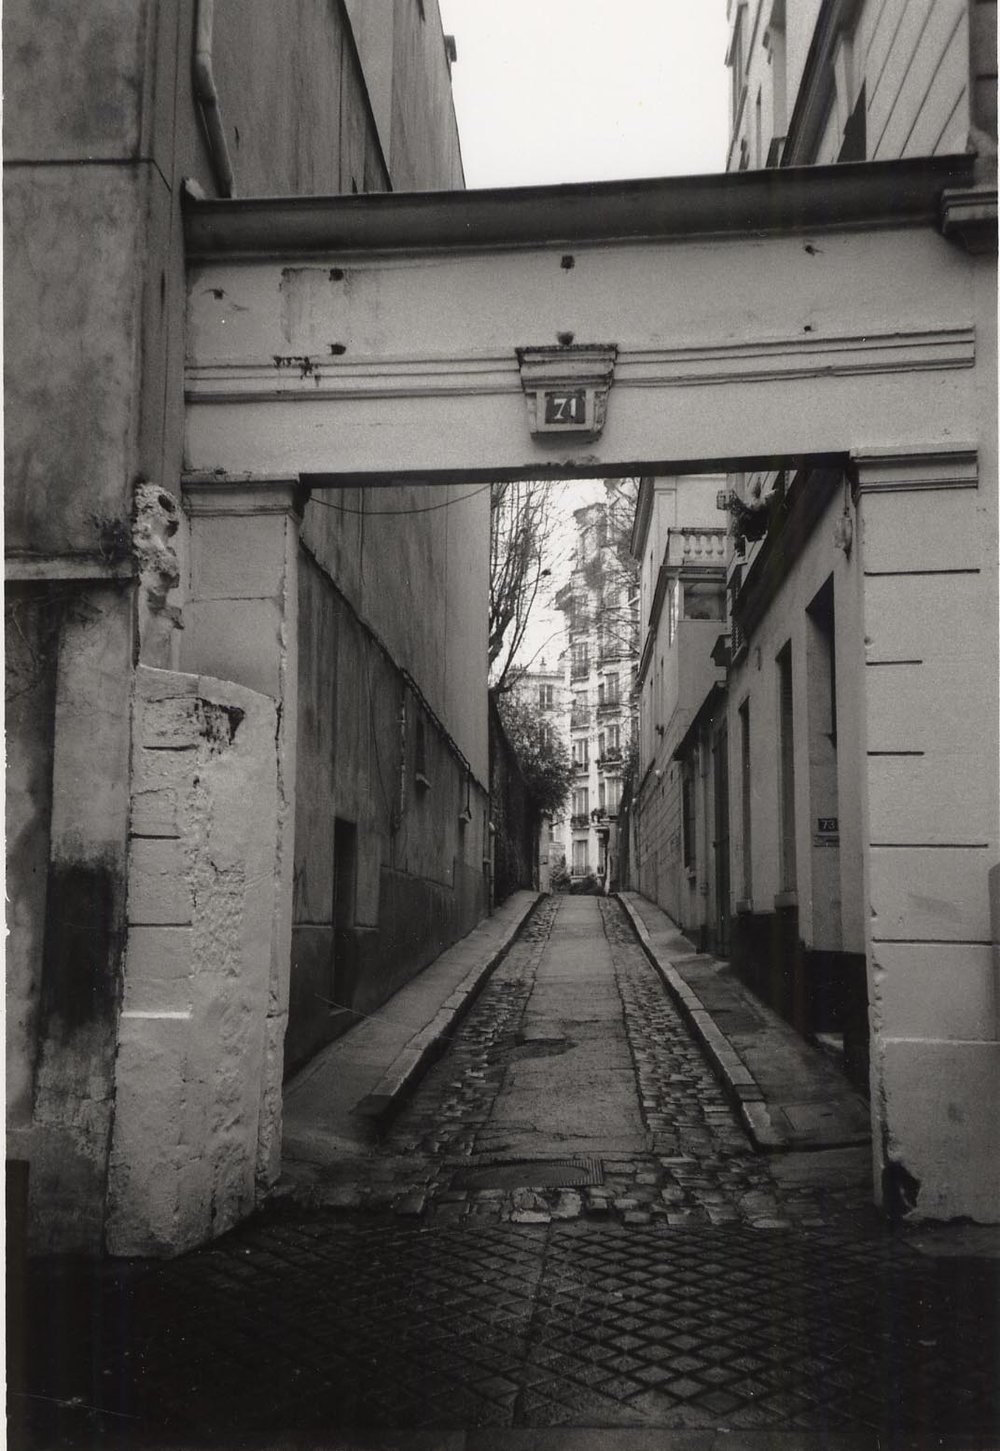 Studio entry, Rue du Cardinal Lemoine, Paris (1998)